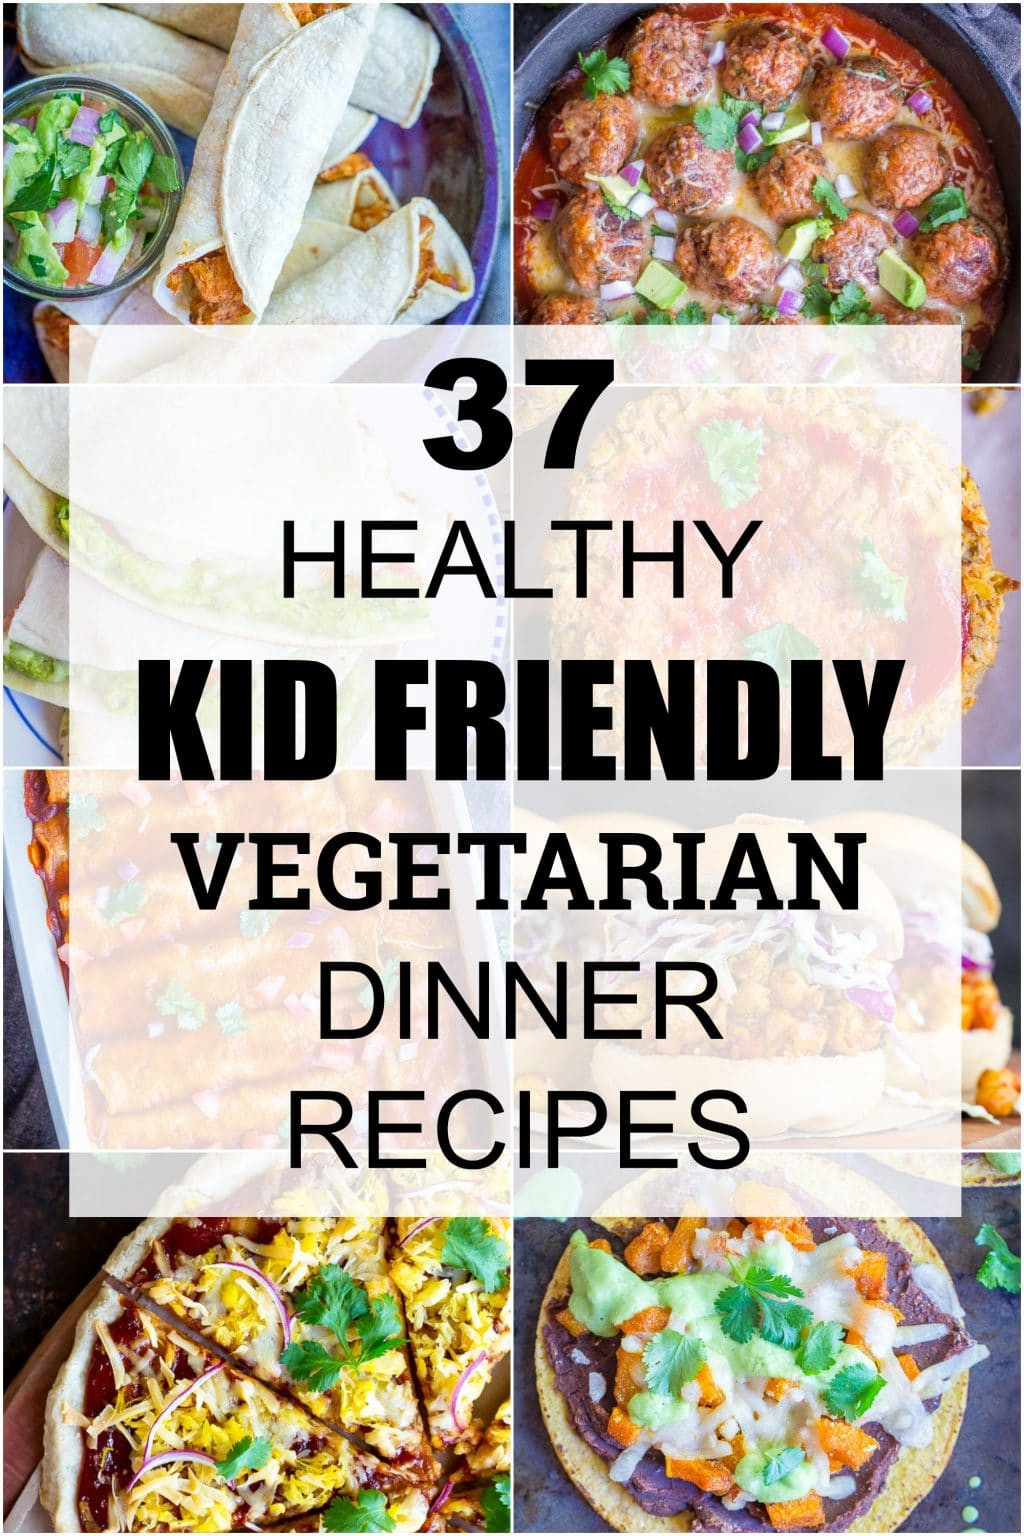 Easy Healthy Kid Friendly Dinner Recipes  37 Healthy Kid Friendly Ve arian Dinner Recipes She